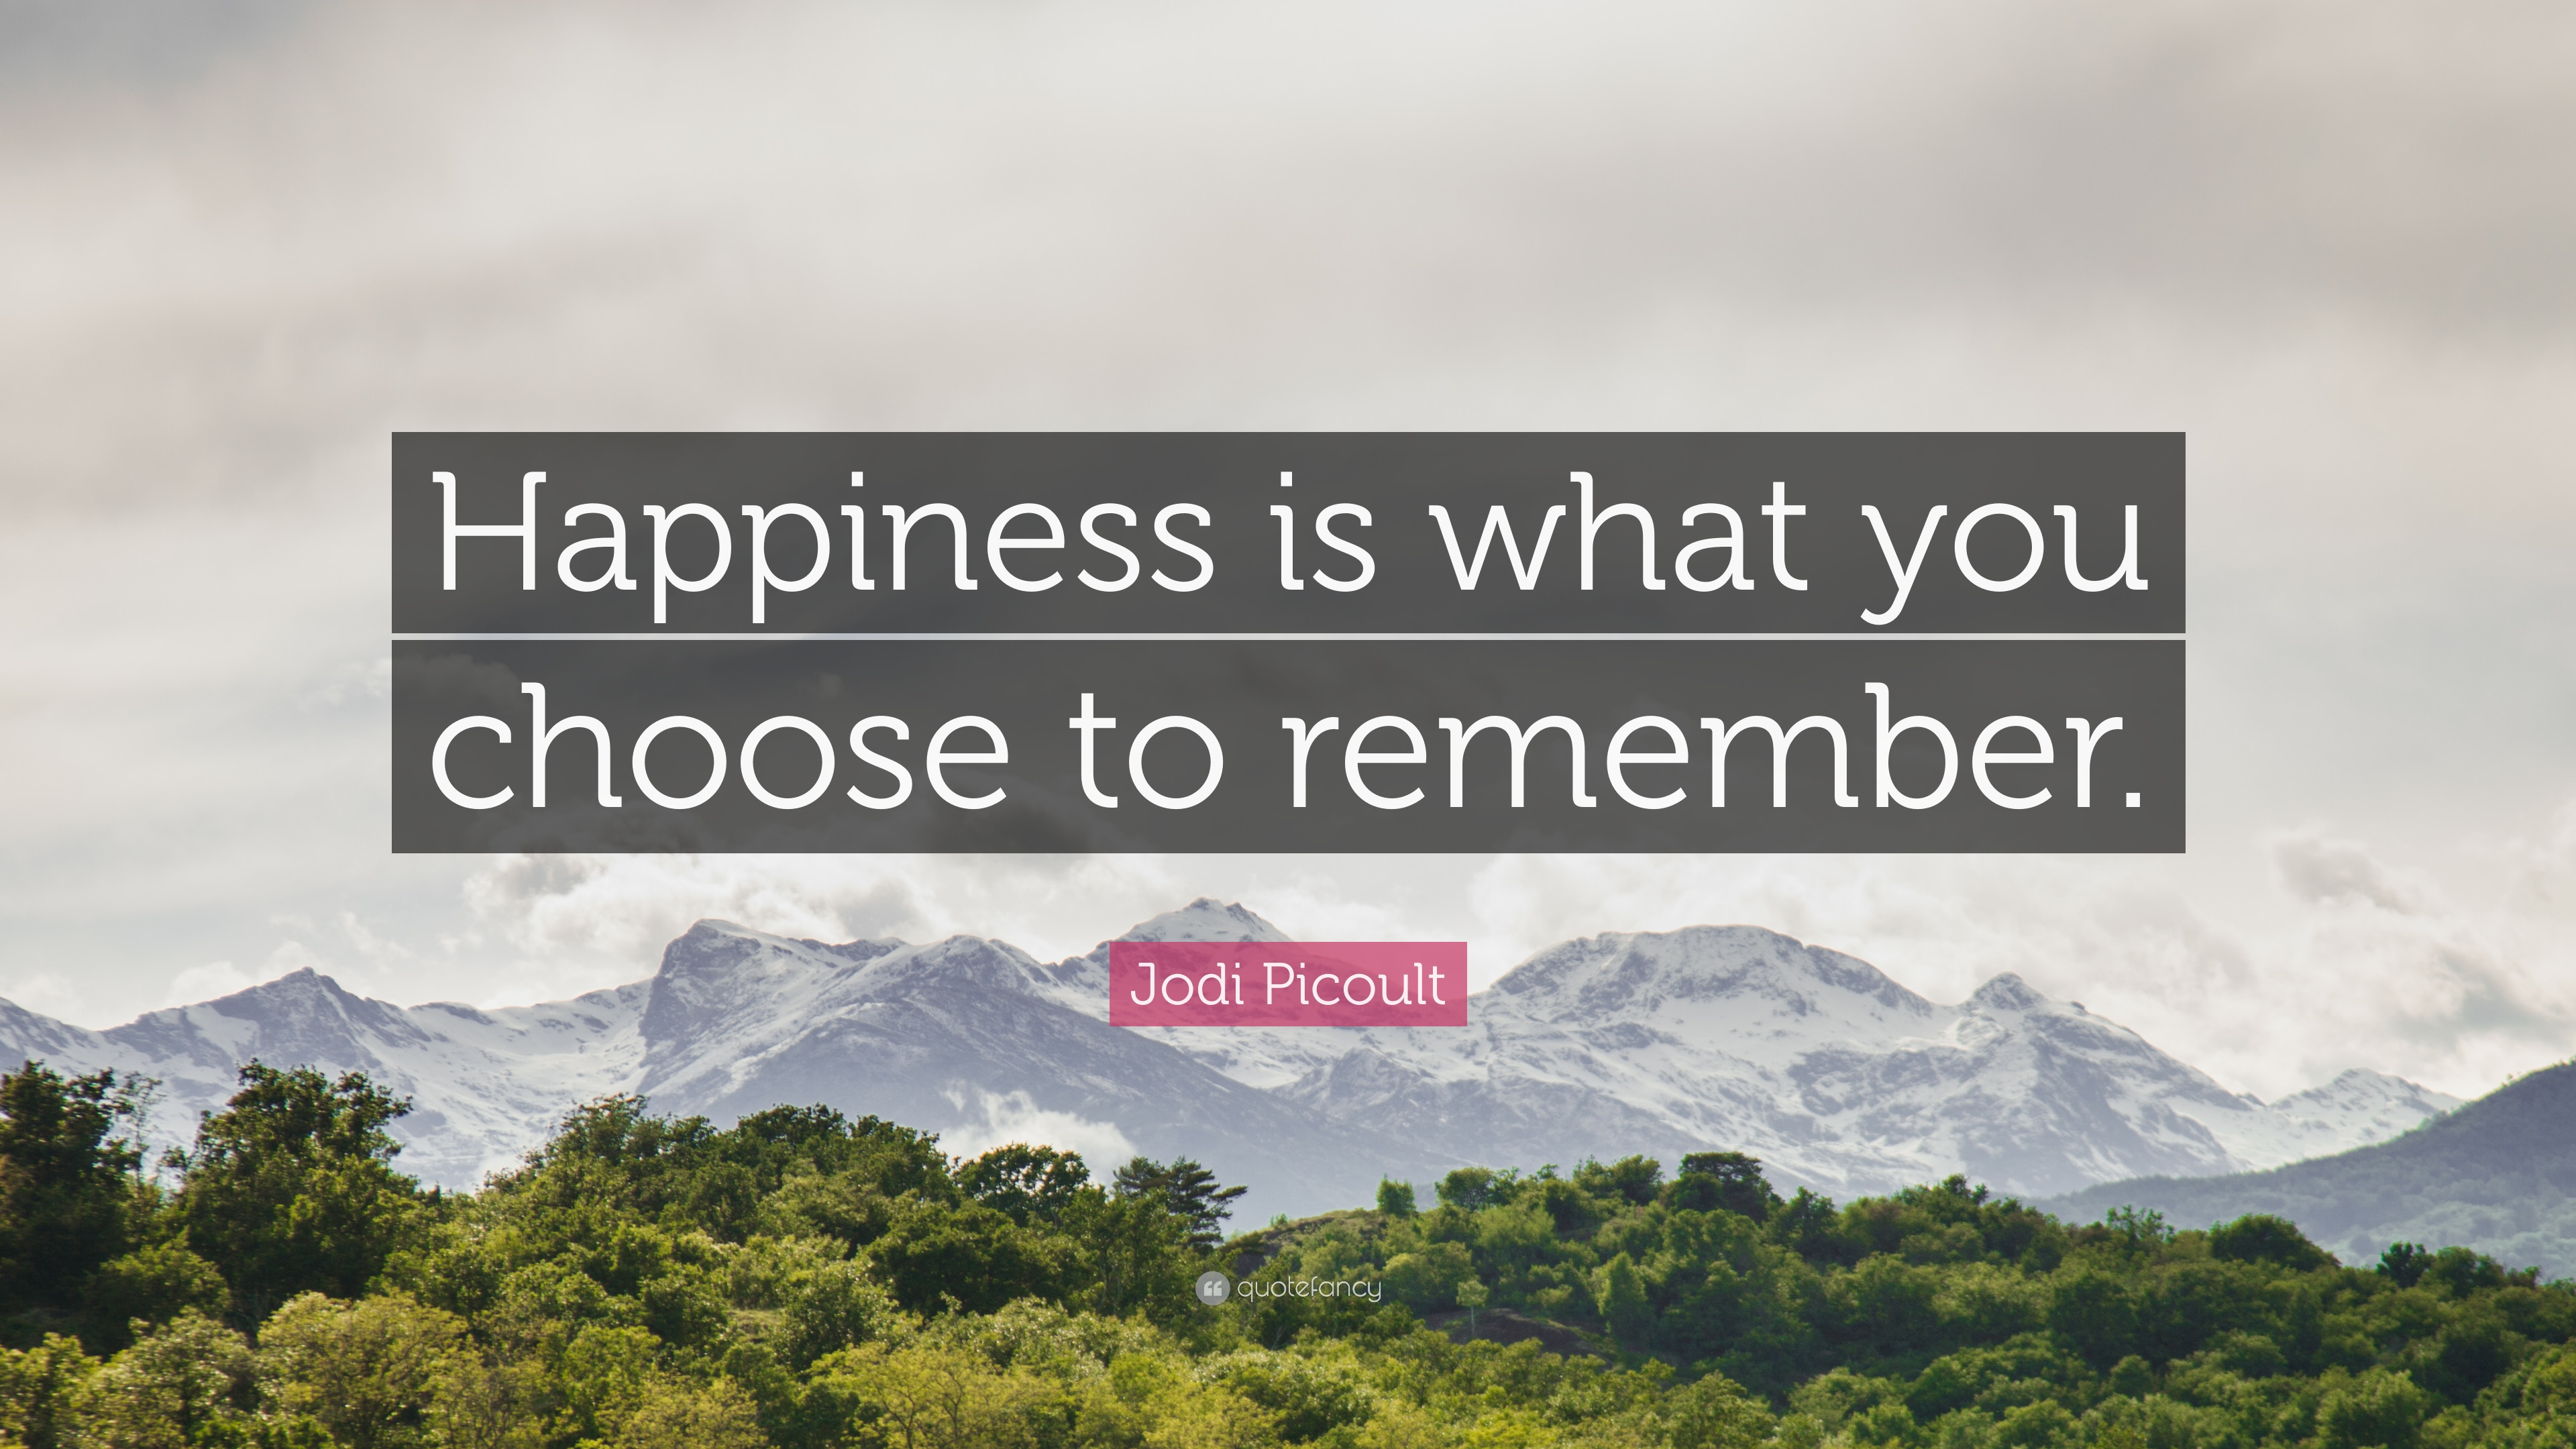 Jodi Picoult Quote: U201cHappiness Is What You Choose To Remember.u201d